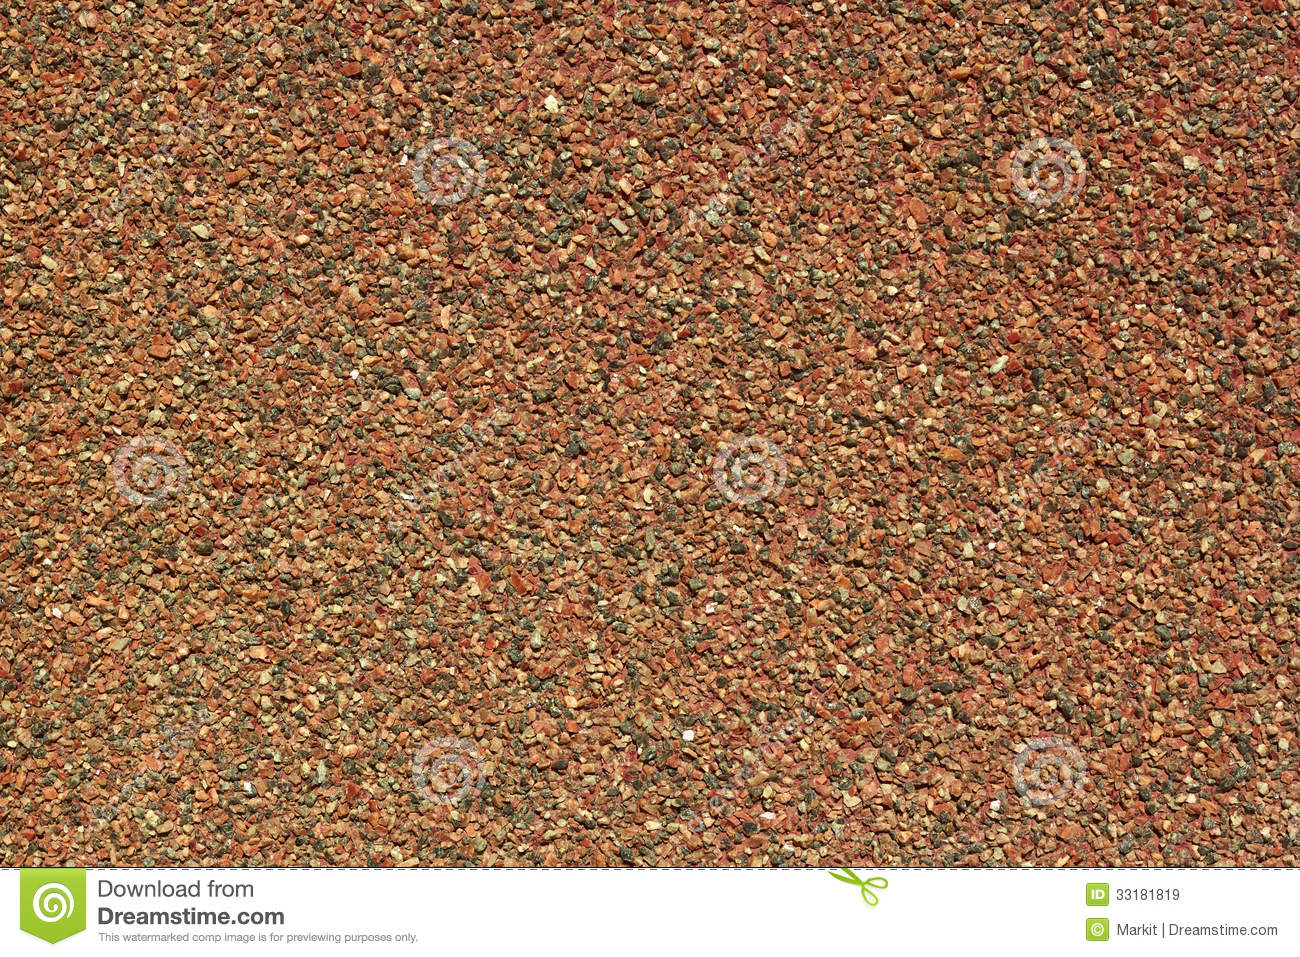 Decorative Covering Exterior Wall Royalty Free Stock Images Image 33181819